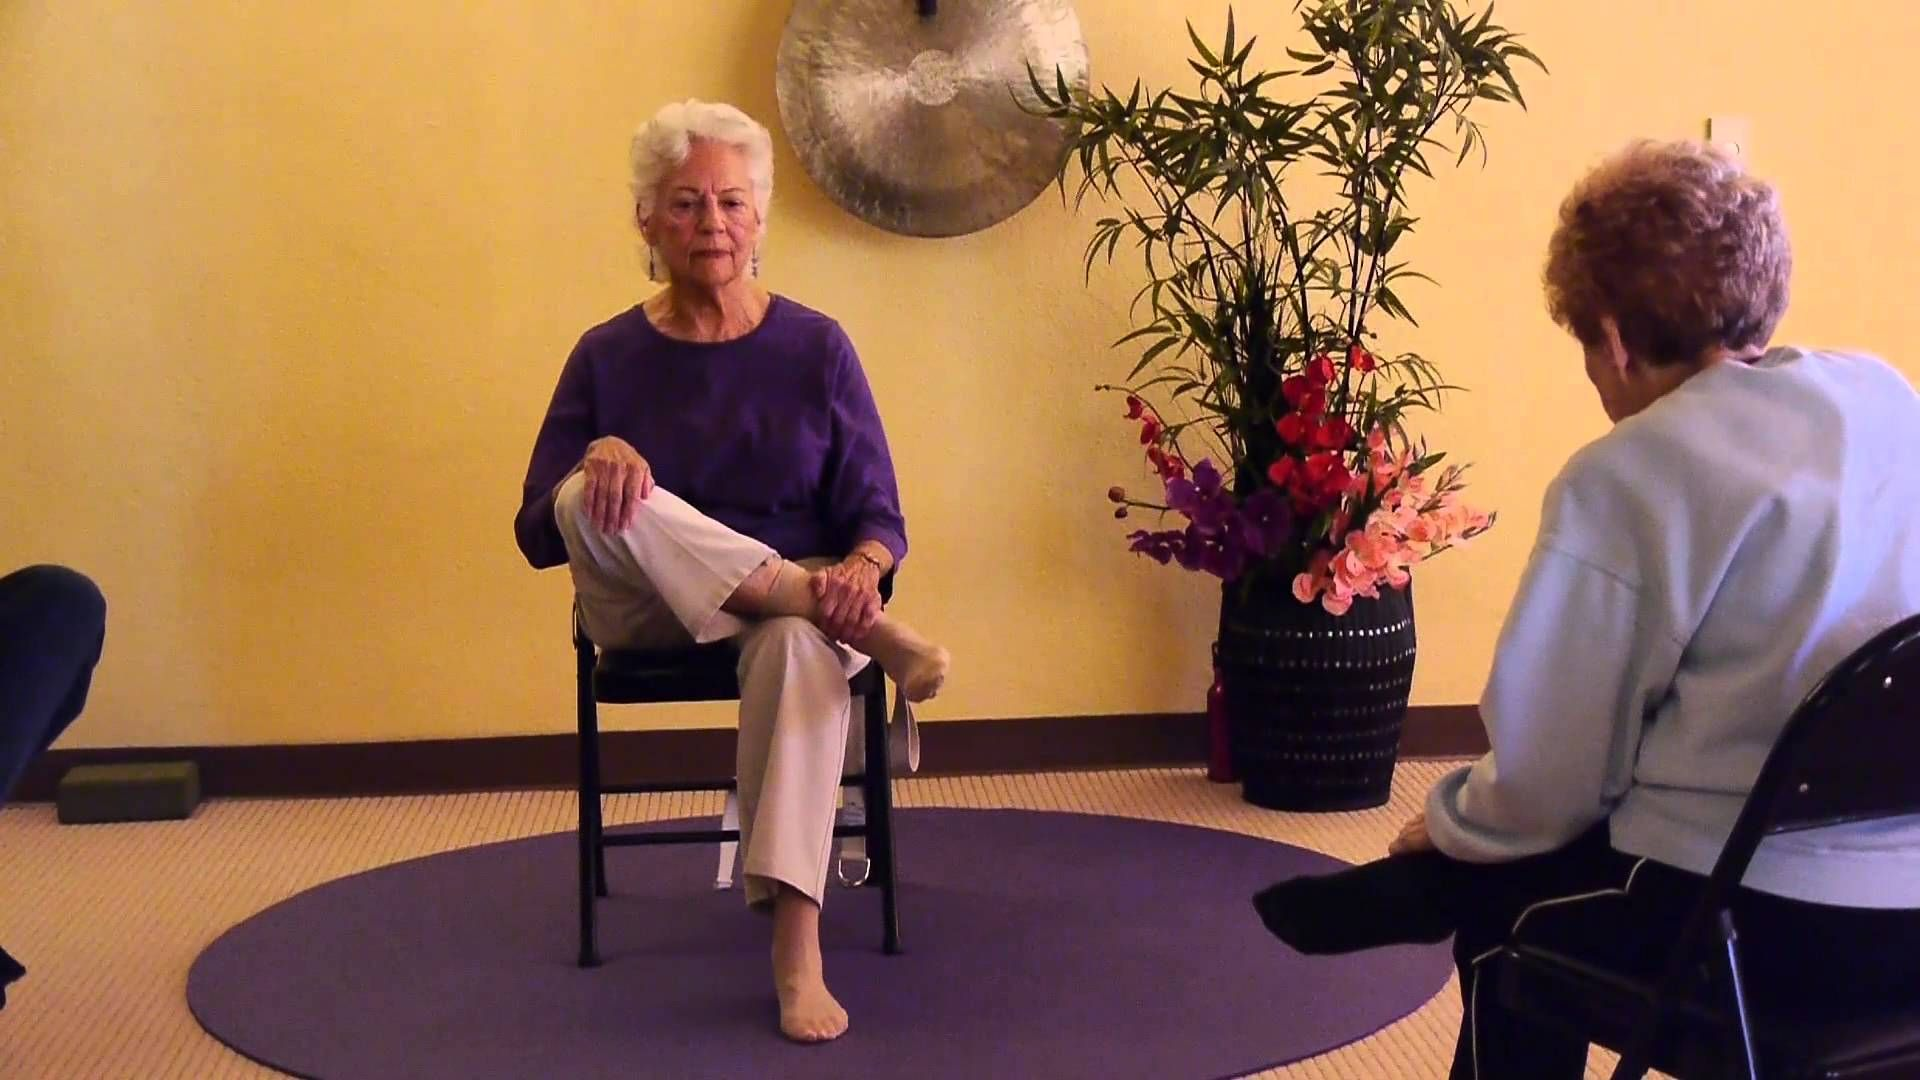 Seniors Keep their Hip Joints Flexible and Strong with